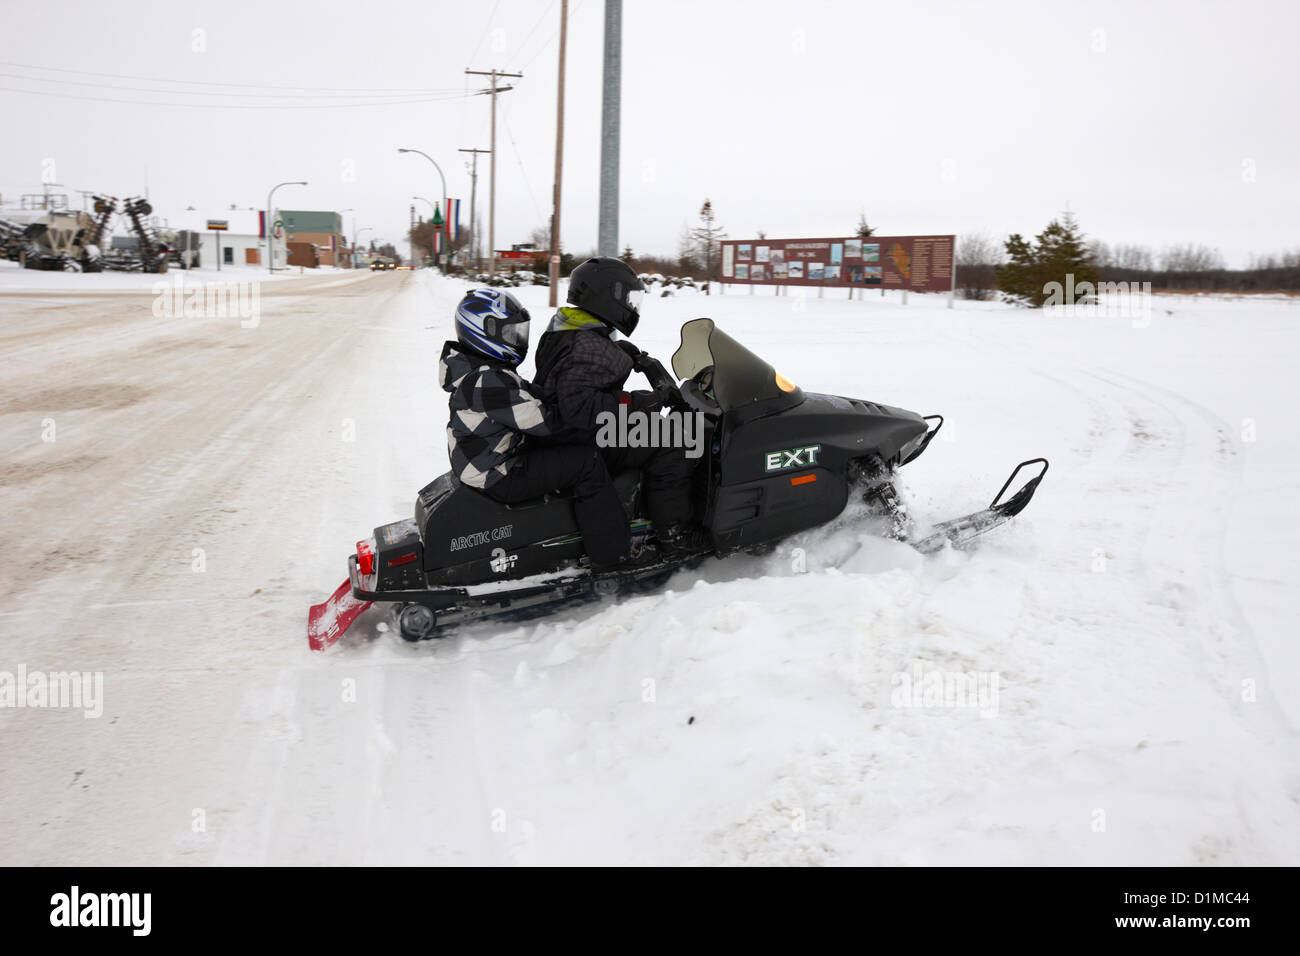 couple on a snowmobile going off road Kamsack Saskatchewan Canada - Stock Image